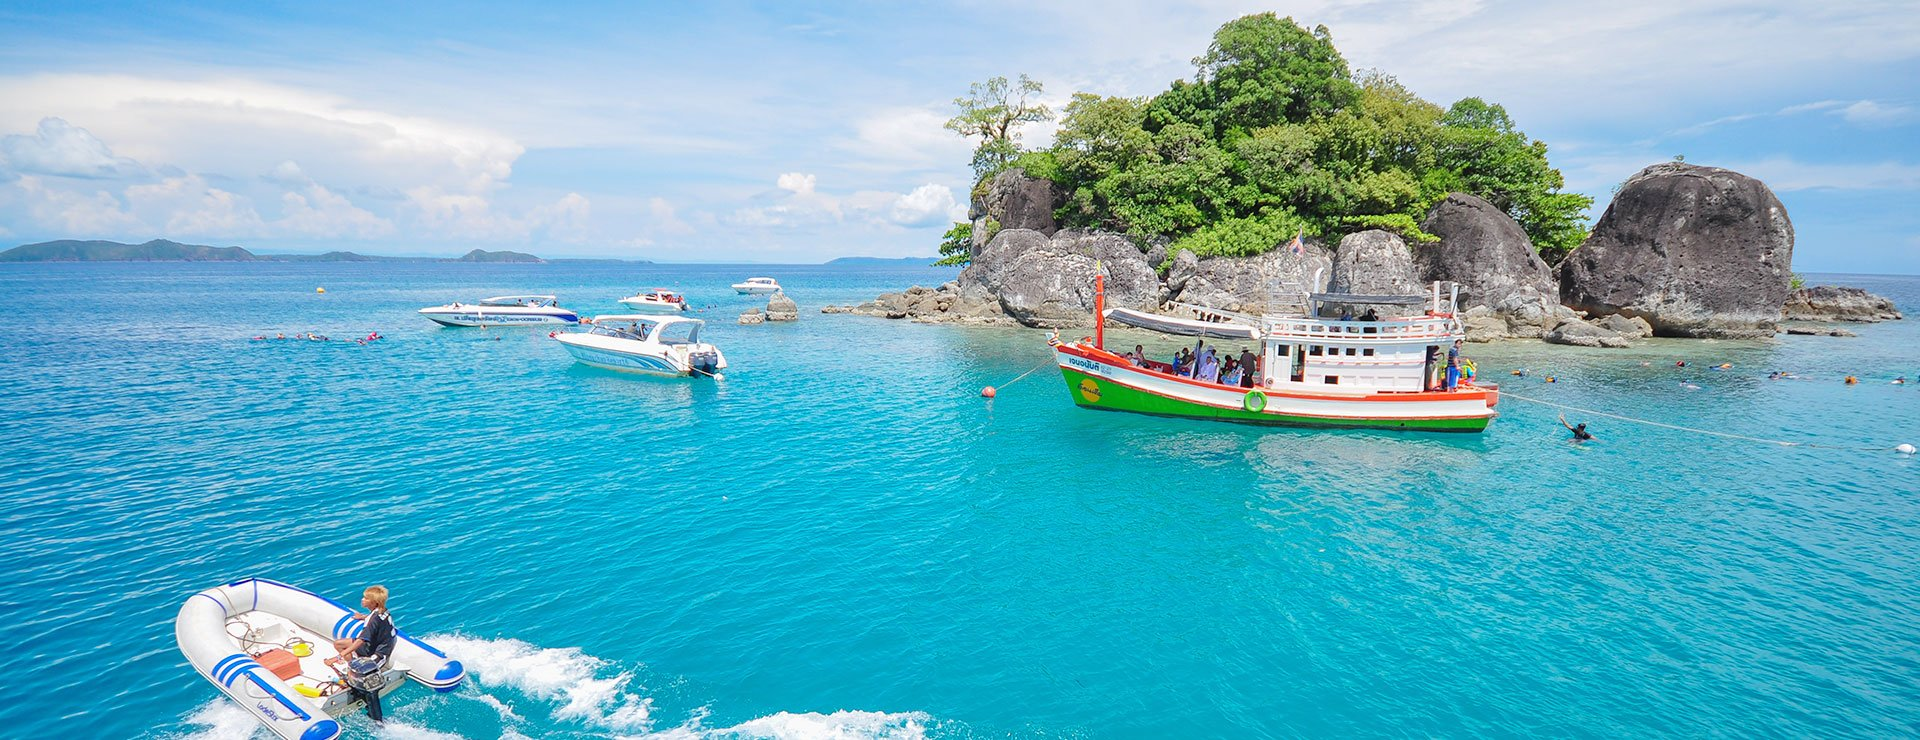 The Awe-inspiring Destinations In Southeast Asia That You Can't Miss